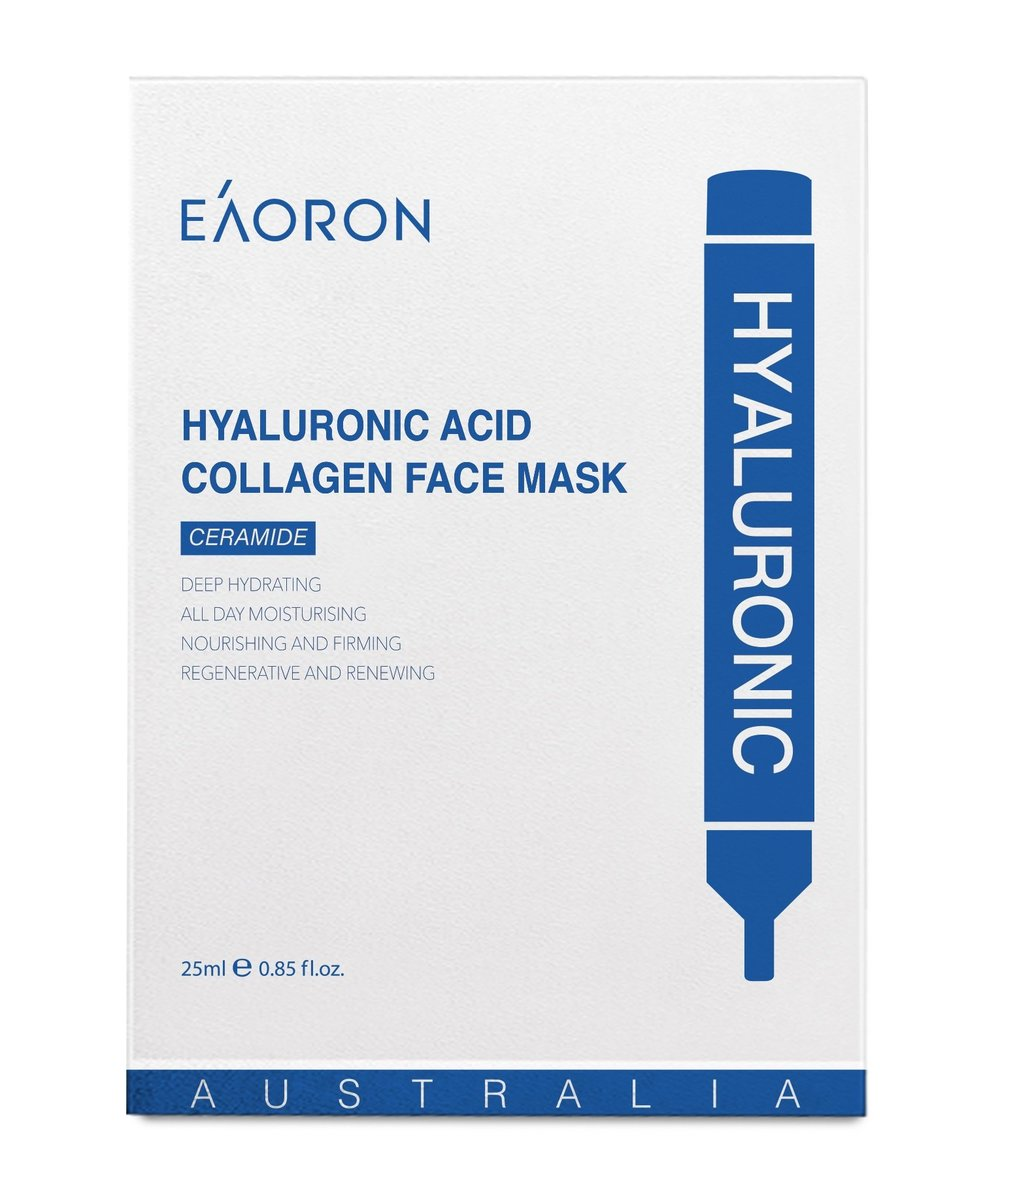 Hyaluronic Acid Collagen Hydrating Face Mask 25ml 5 Piece